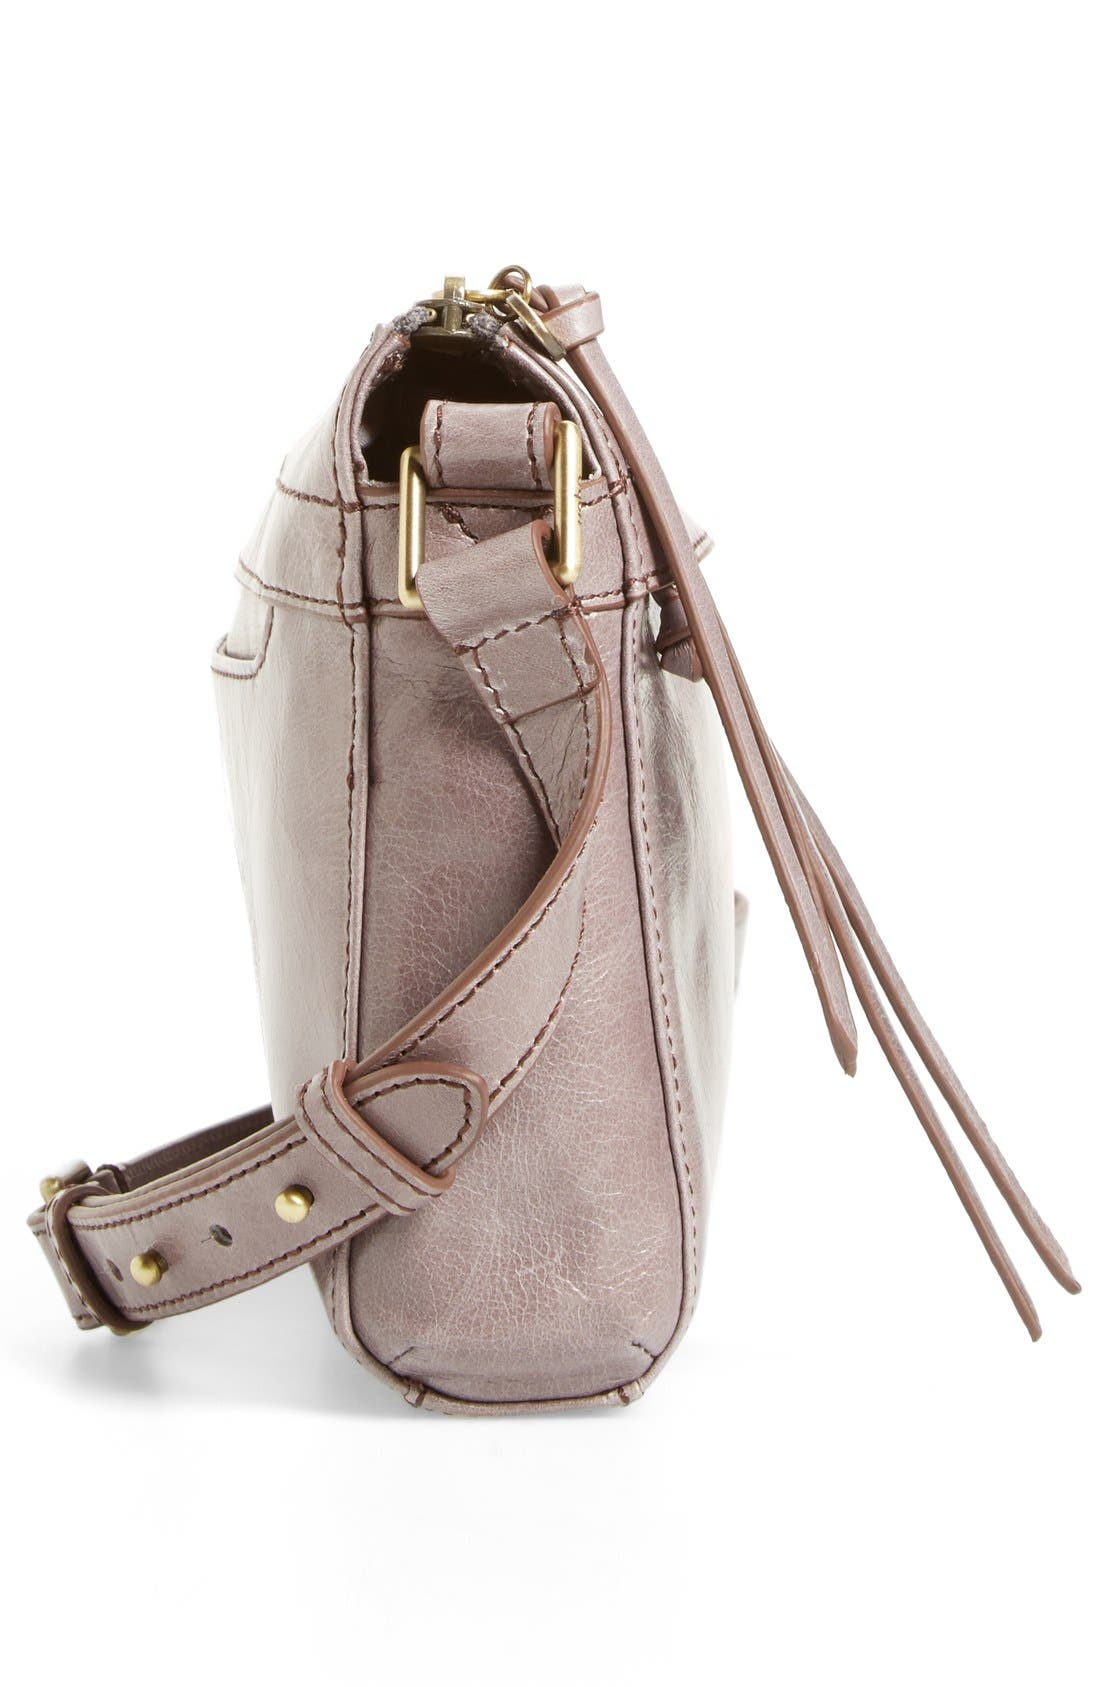 Tobey Leather Crossbody Bag,                             Alternate thumbnail 36, color,